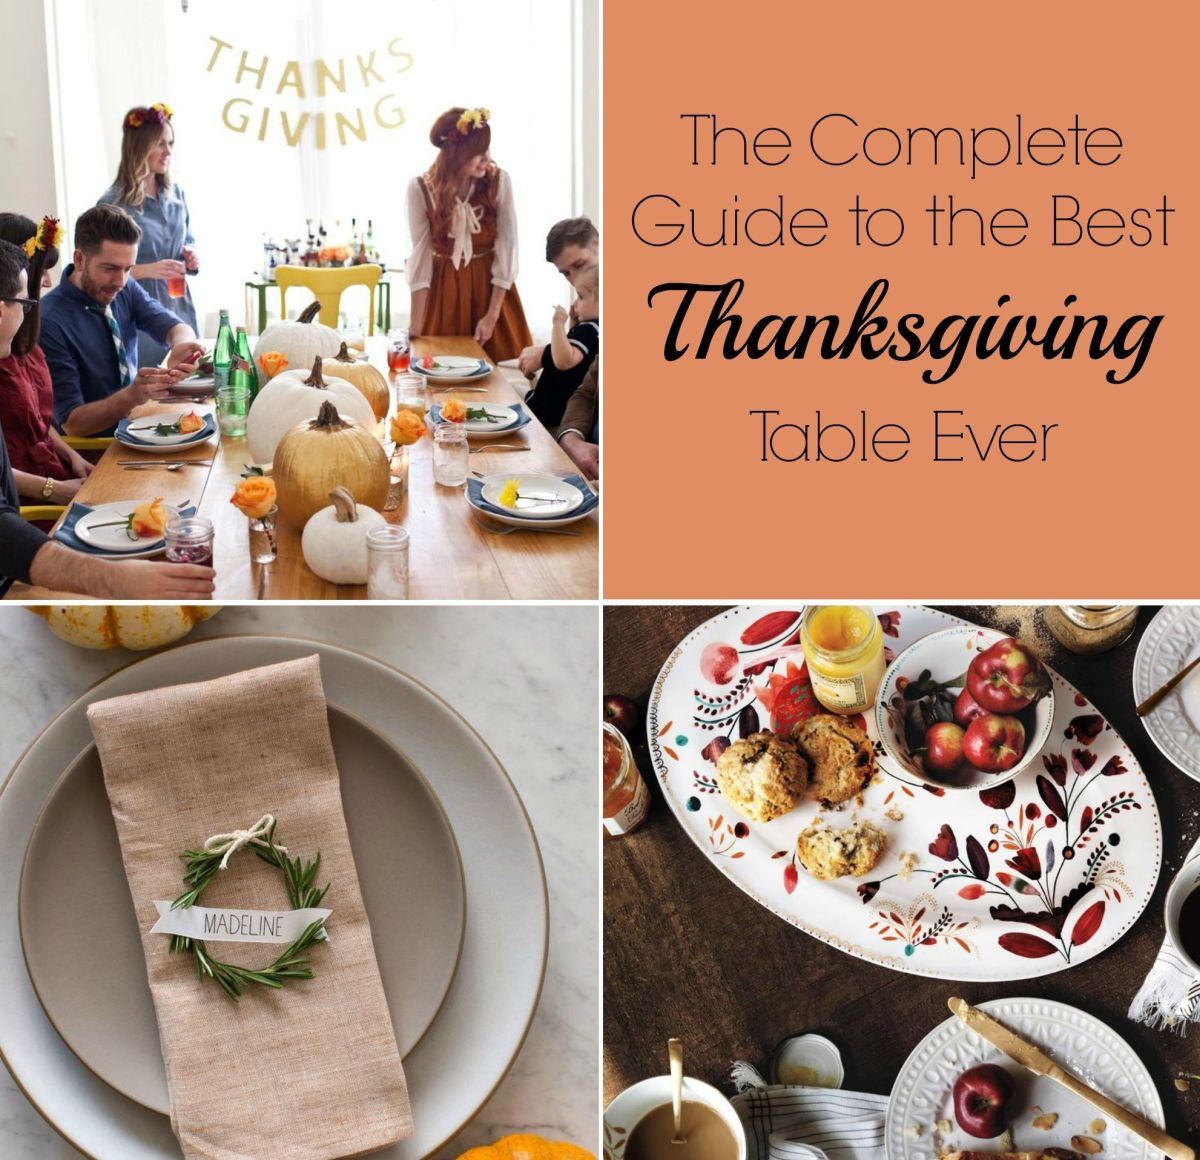 Thanksgiving table cover design The Complete Guide